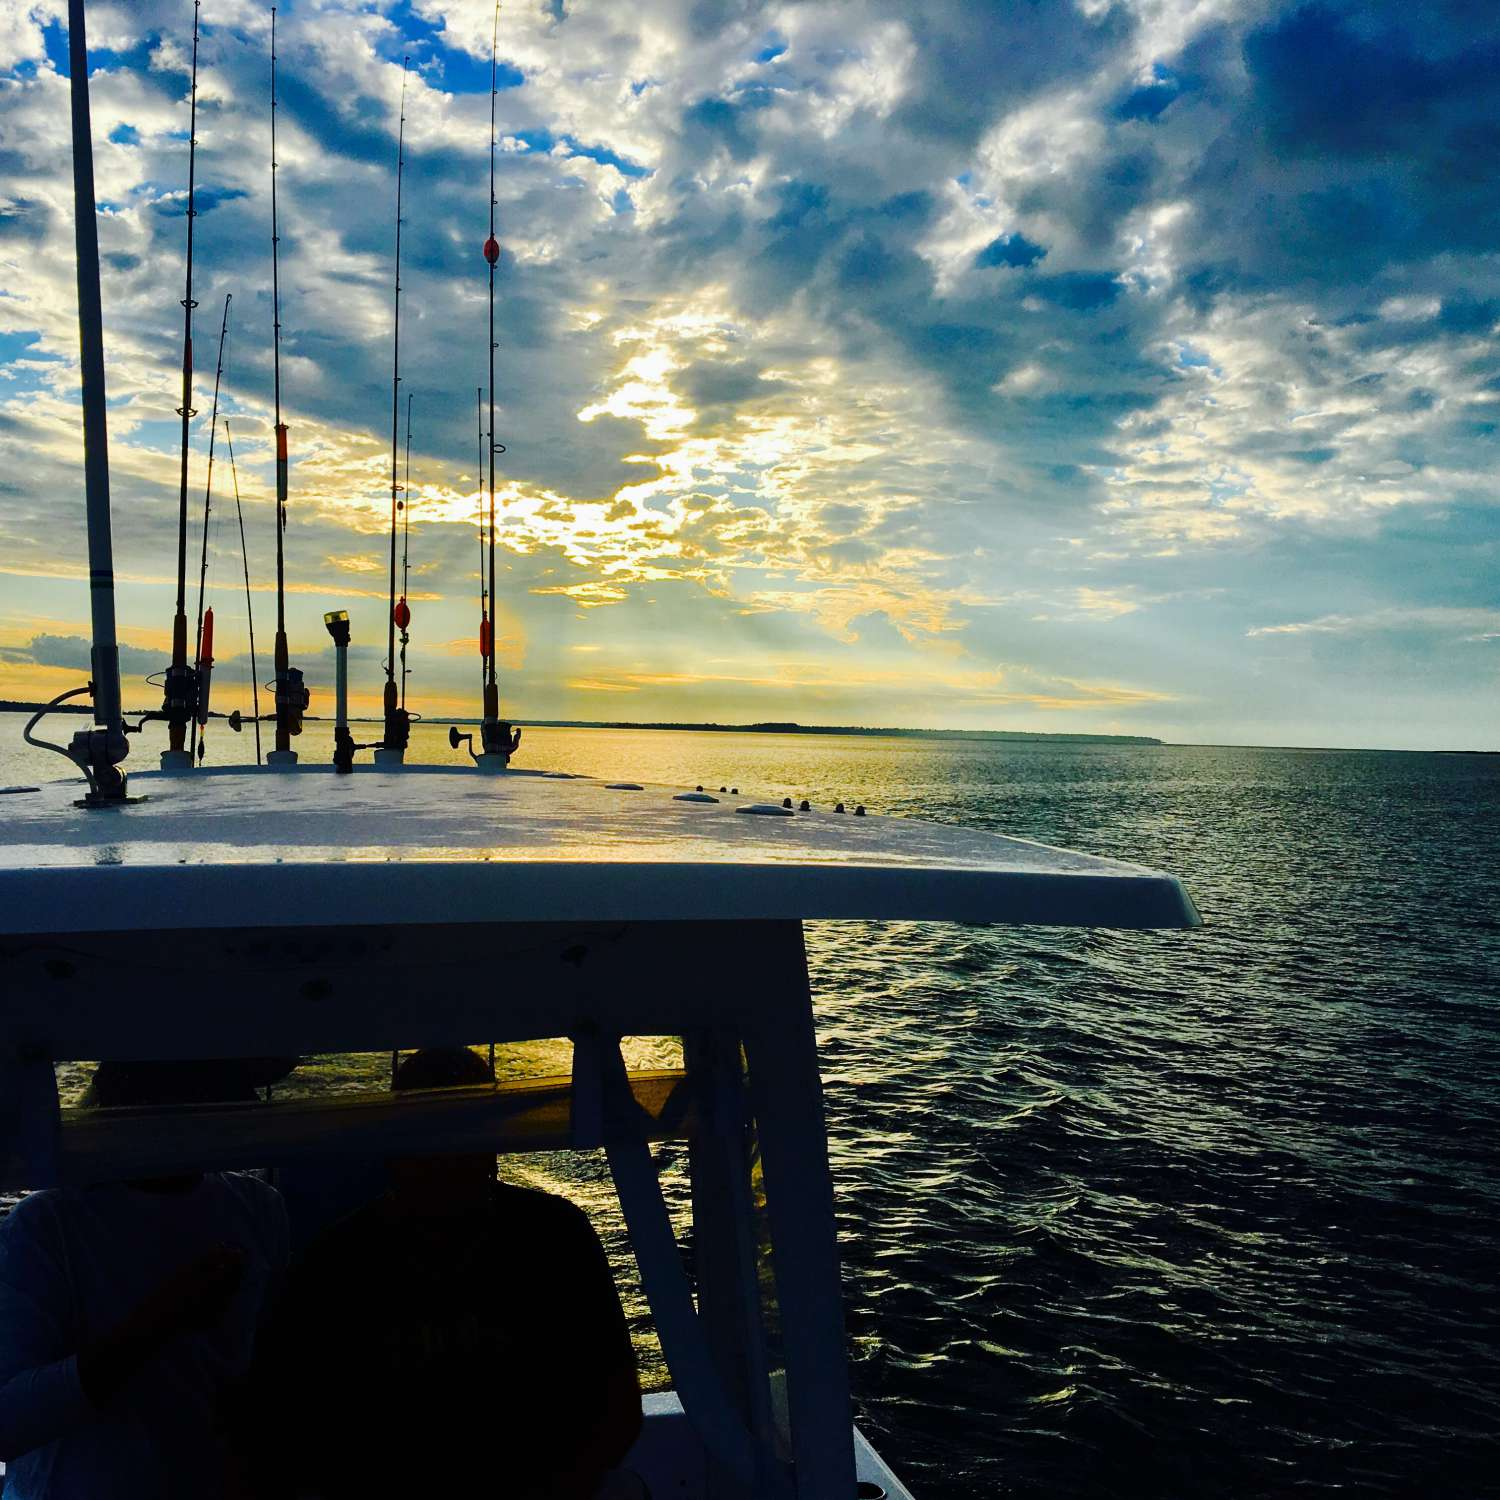 Title: Early Morning Bite In Savannah - On board their Sportsman Heritage 211 Center Console - Location: Savannah, Georgia. Participating in the Photo Contest #SportsmanAugust2017